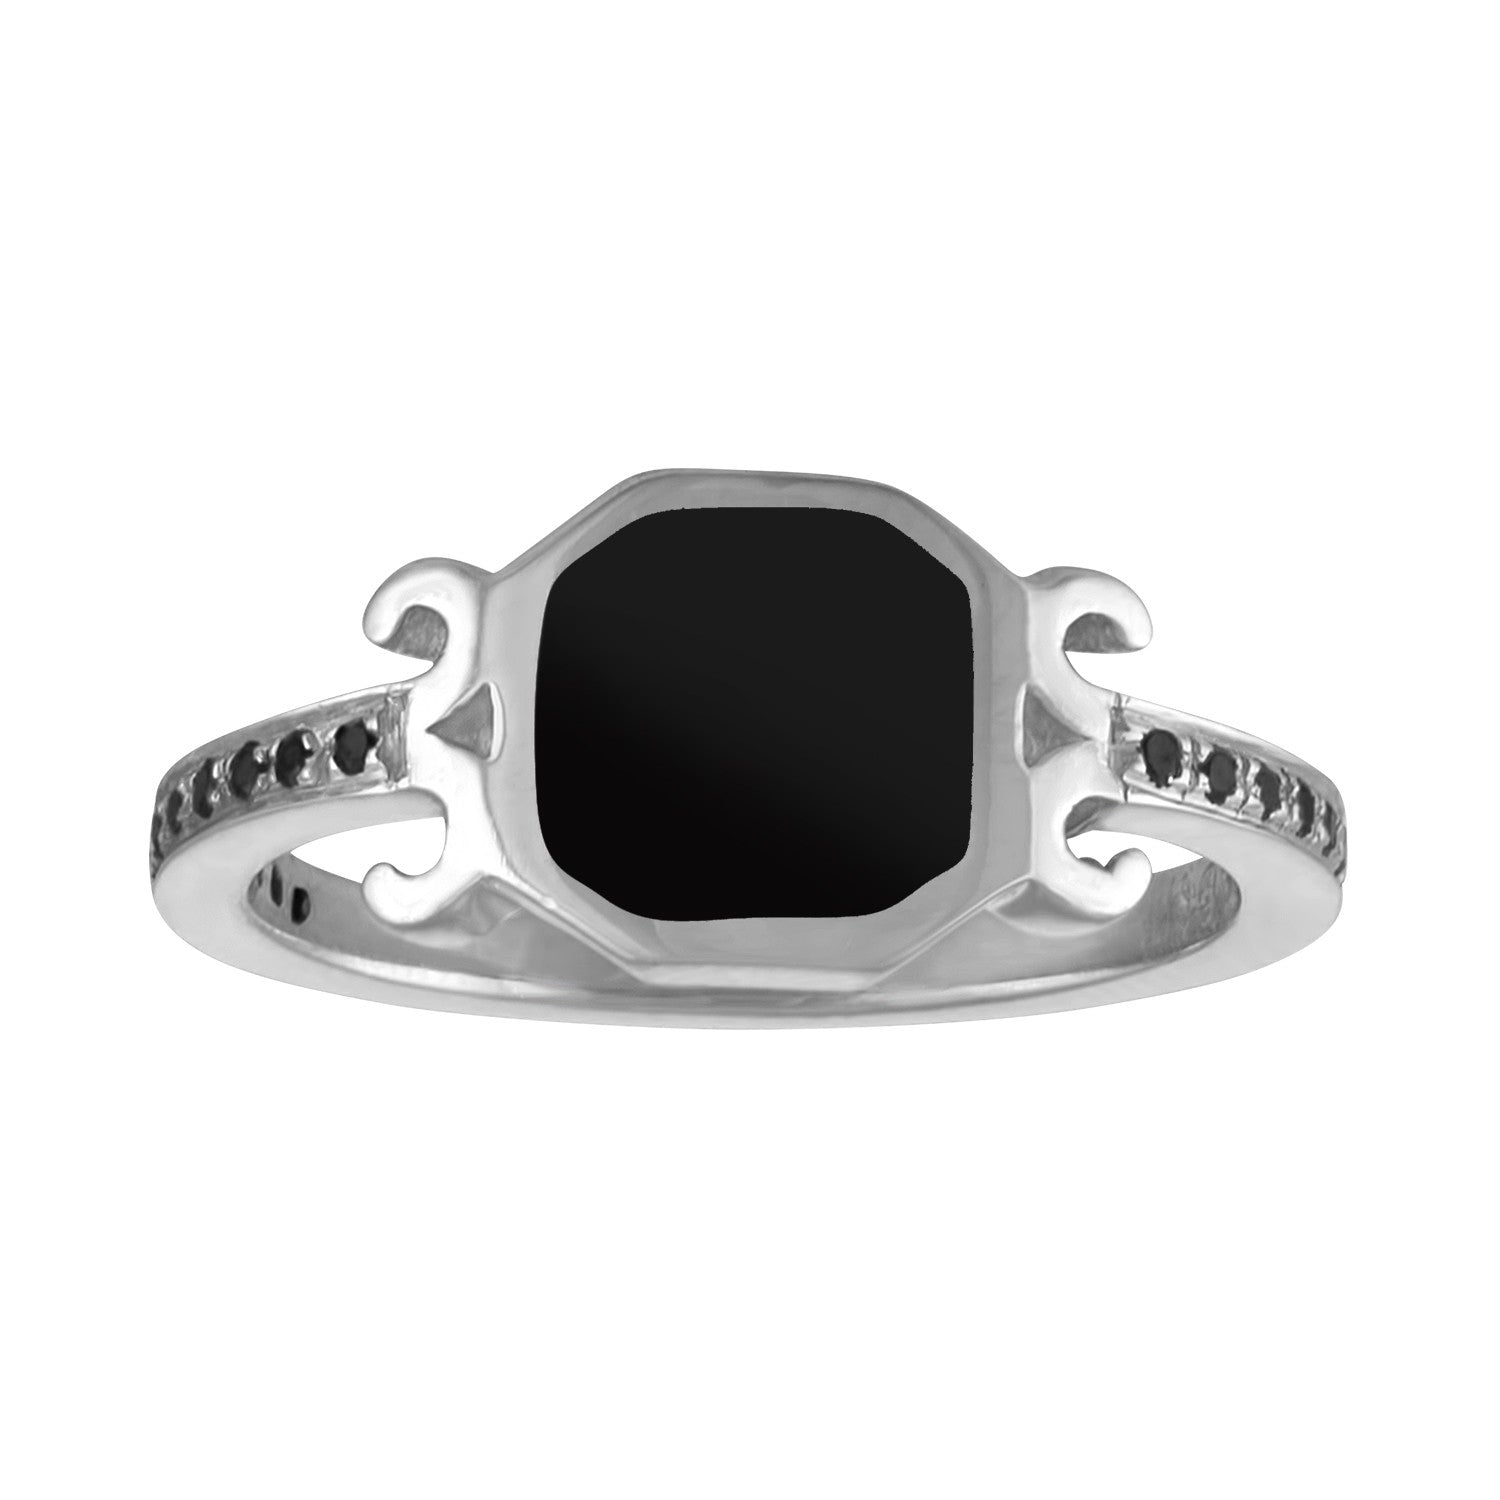 Vintage Style Ring in Sterling Silver with Black Spinels and Enamel